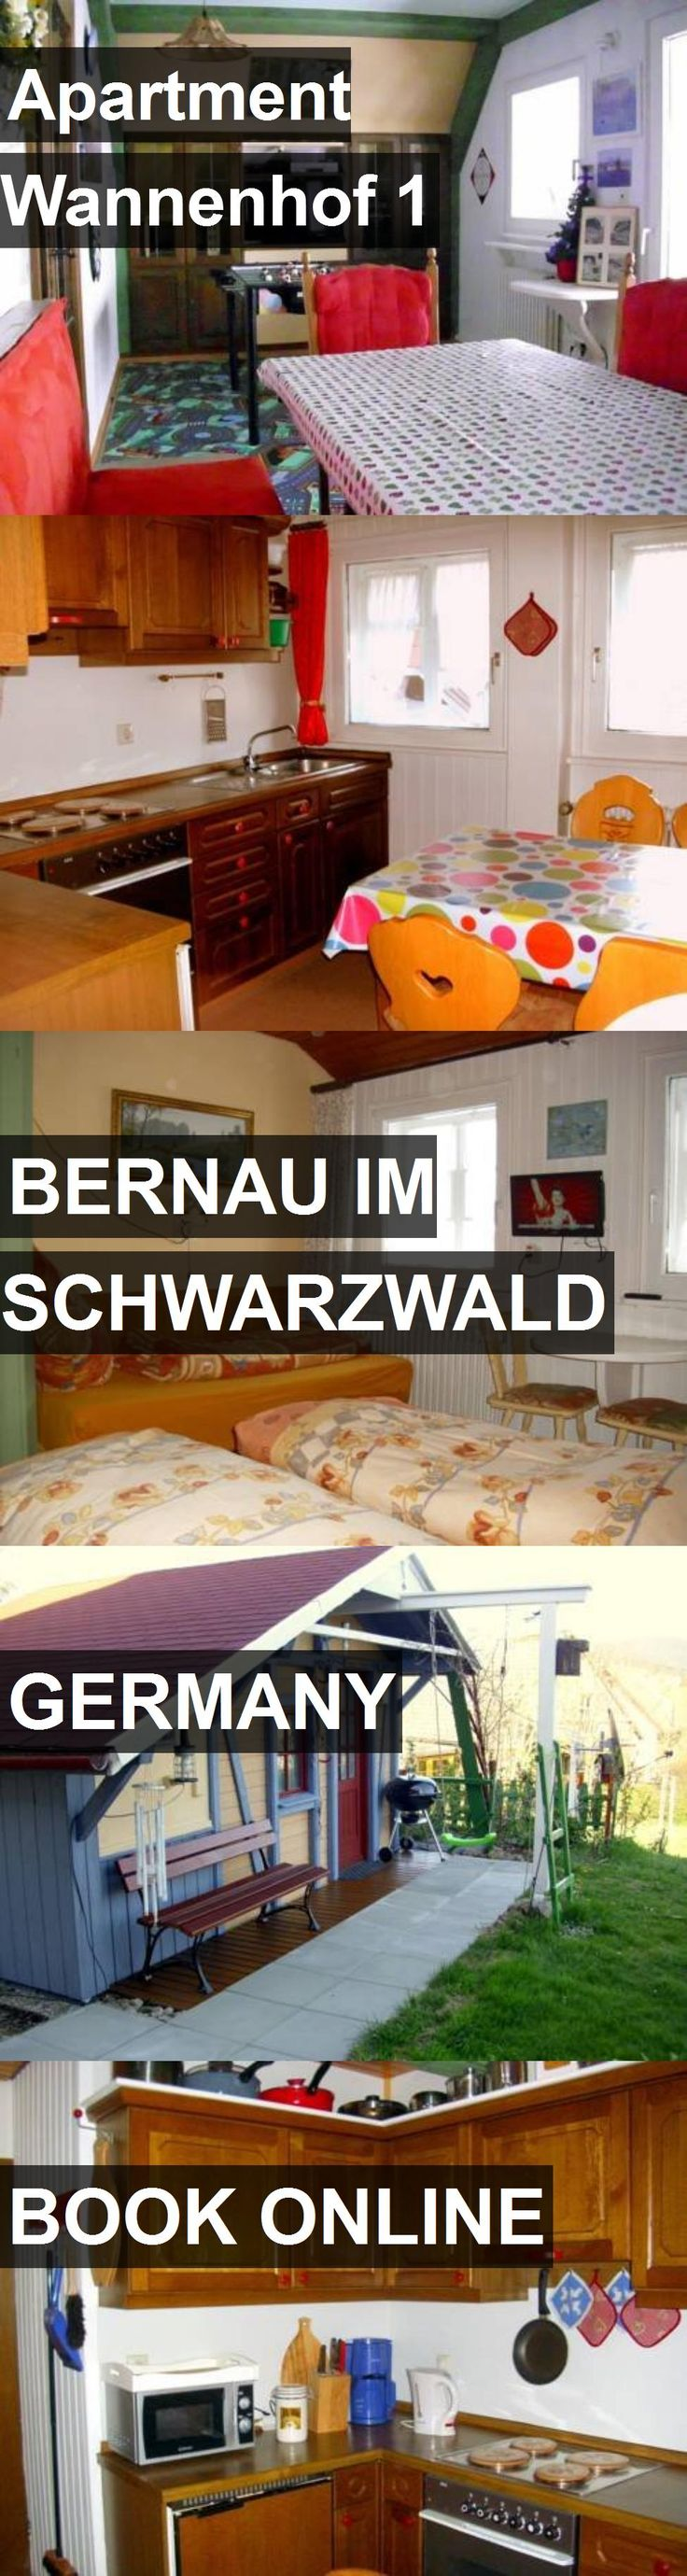 Hotel Apartment Wannenhof 1 in Bernau Im Schwarzwald, Germany. For more information, photos, reviews and best prices please follow the link. #Germany #BernauImSchwarzwald #ApartmentWannenhof1 #hotel #travel #vacation